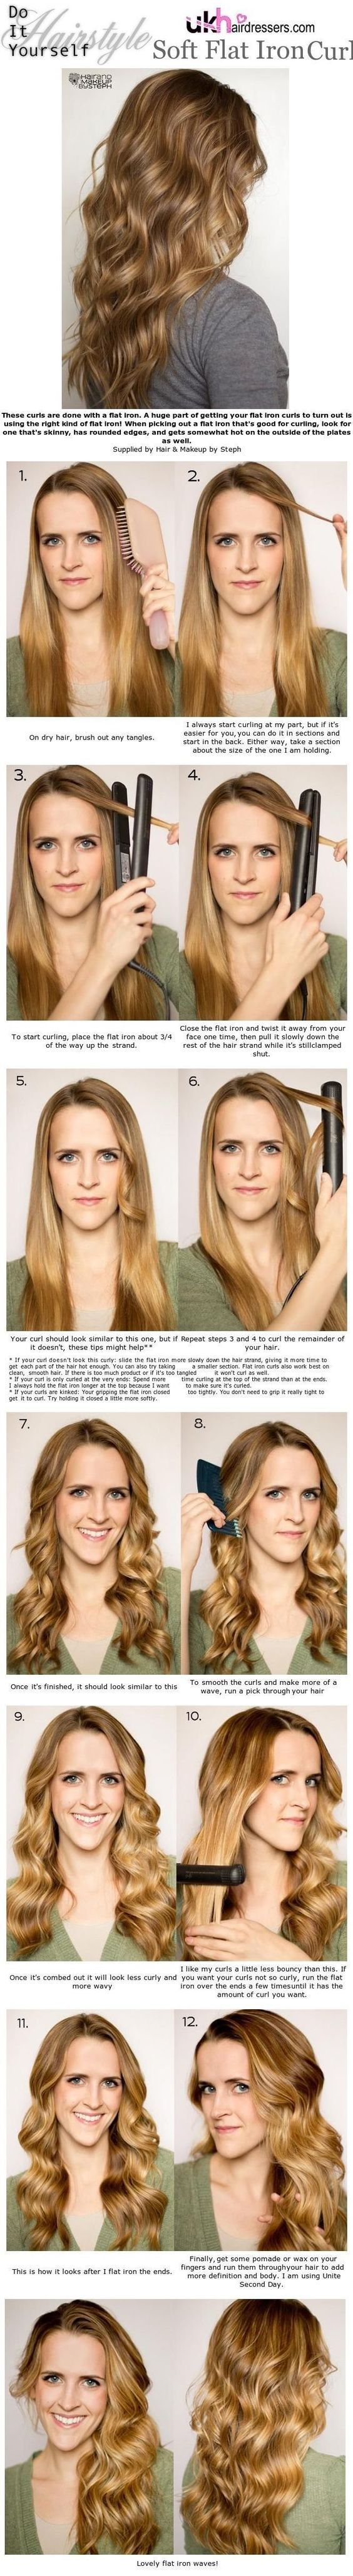 how to make soft curls using flat iron